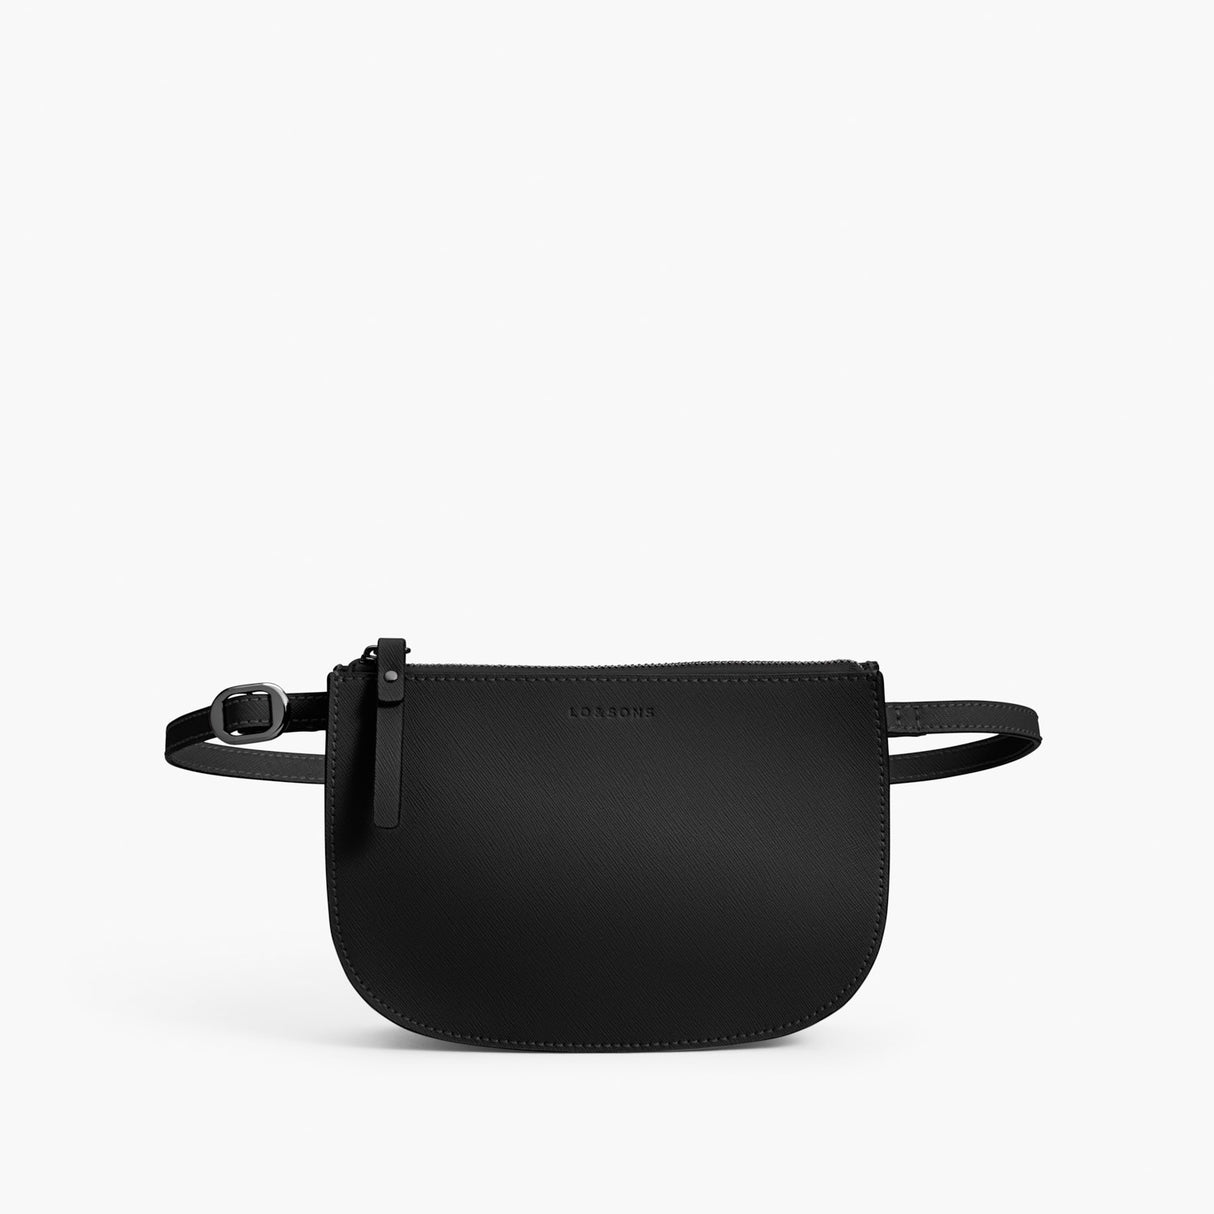 Front Beltbag - Waverley 2 - Saffiano Leather - Black / Gunmetal / Grey - Crossbody Bag - Lo & Sons